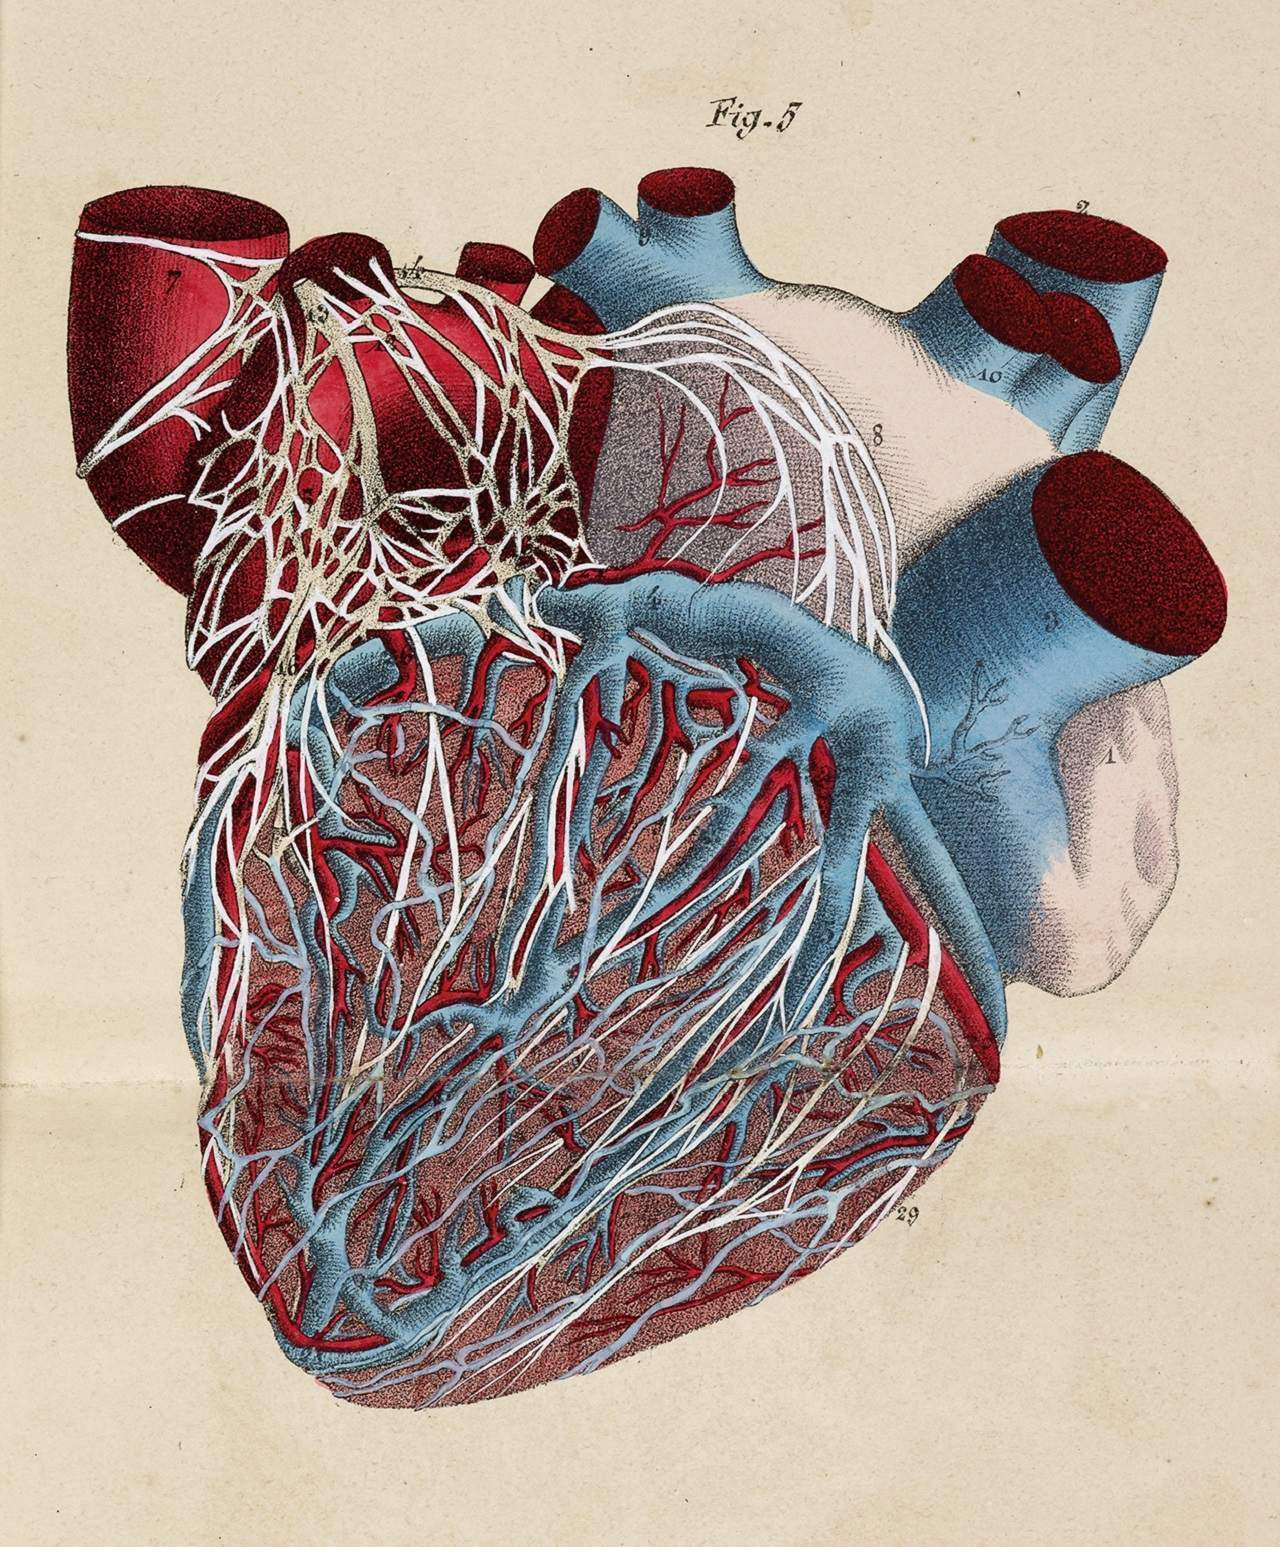 Pump action: the heart-stopping history of cardiac surgery